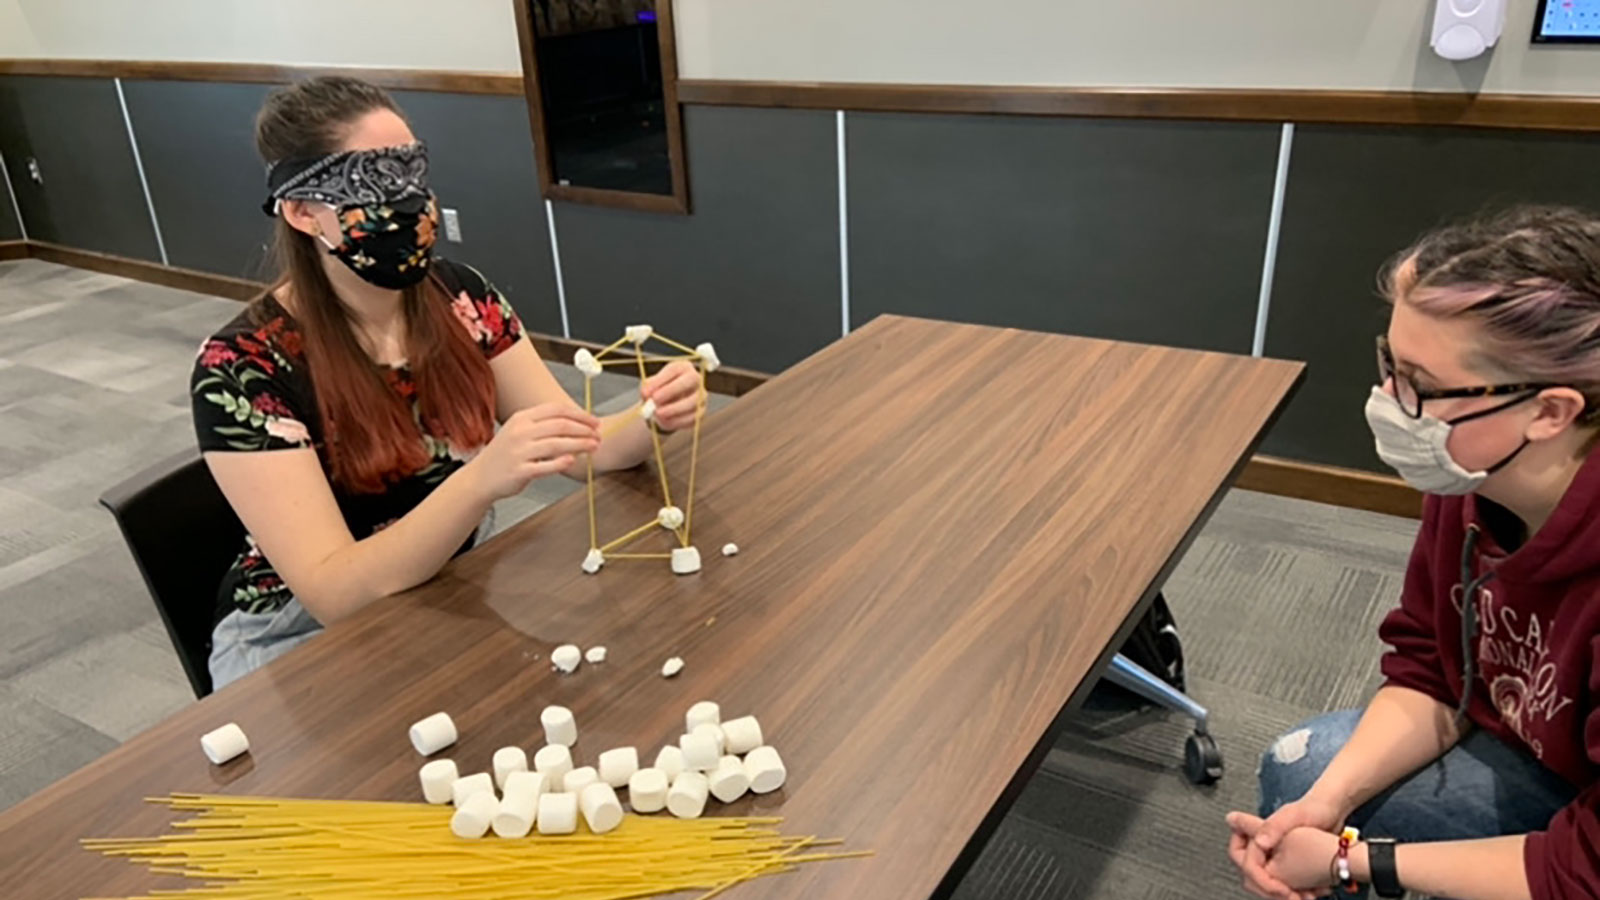 A team of 2 oSTEM members work together blindfolded to create a spaghetti tower building at a COVID-friendly event in 2020.